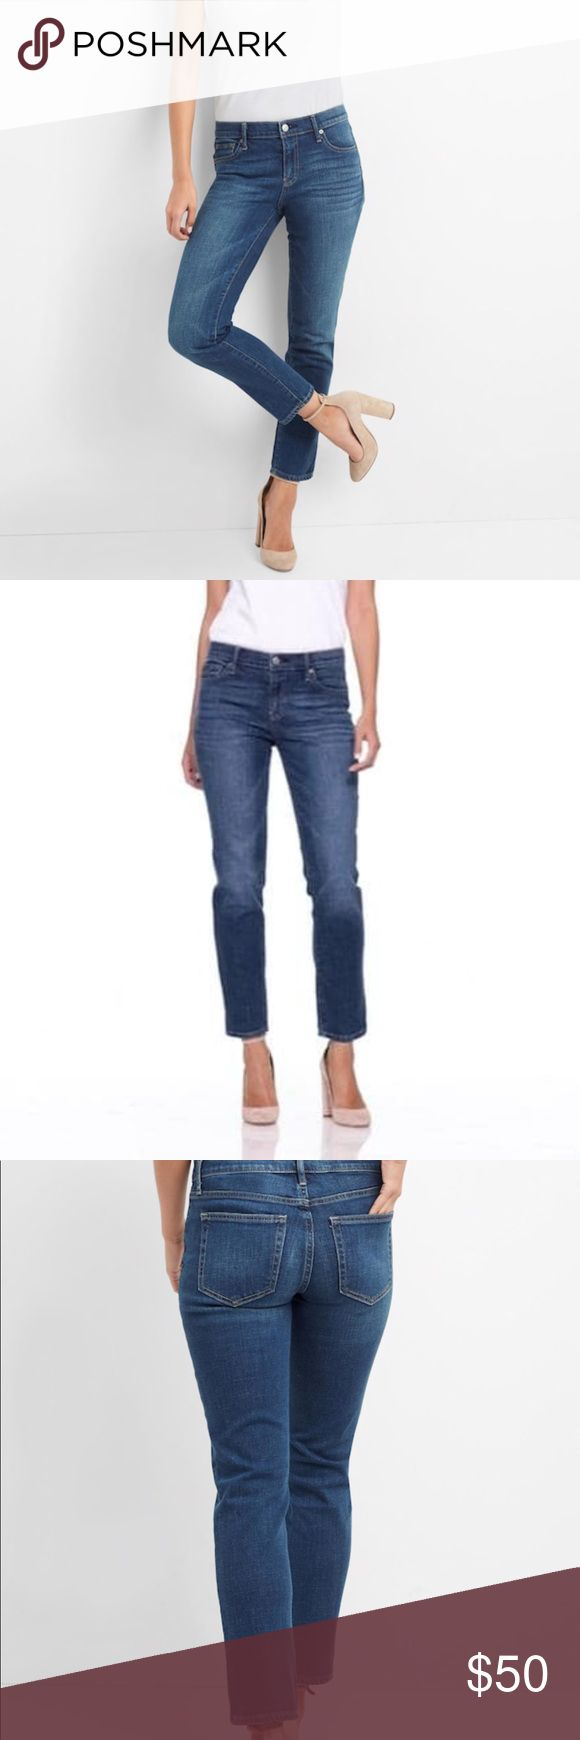 NWT GAP Real Straight Mid Rise Jeans Size 27 NWT GAP Real Straight Mid Rise Jeans Size 27. No flaws, brand new. Slim in the hip & thigh. Straight leg opening. These jeans have a stretch to them. Look fab with heels.  Inseam-27.5 inches Outseam-37.5 inches GAP Jeans Straight Leg